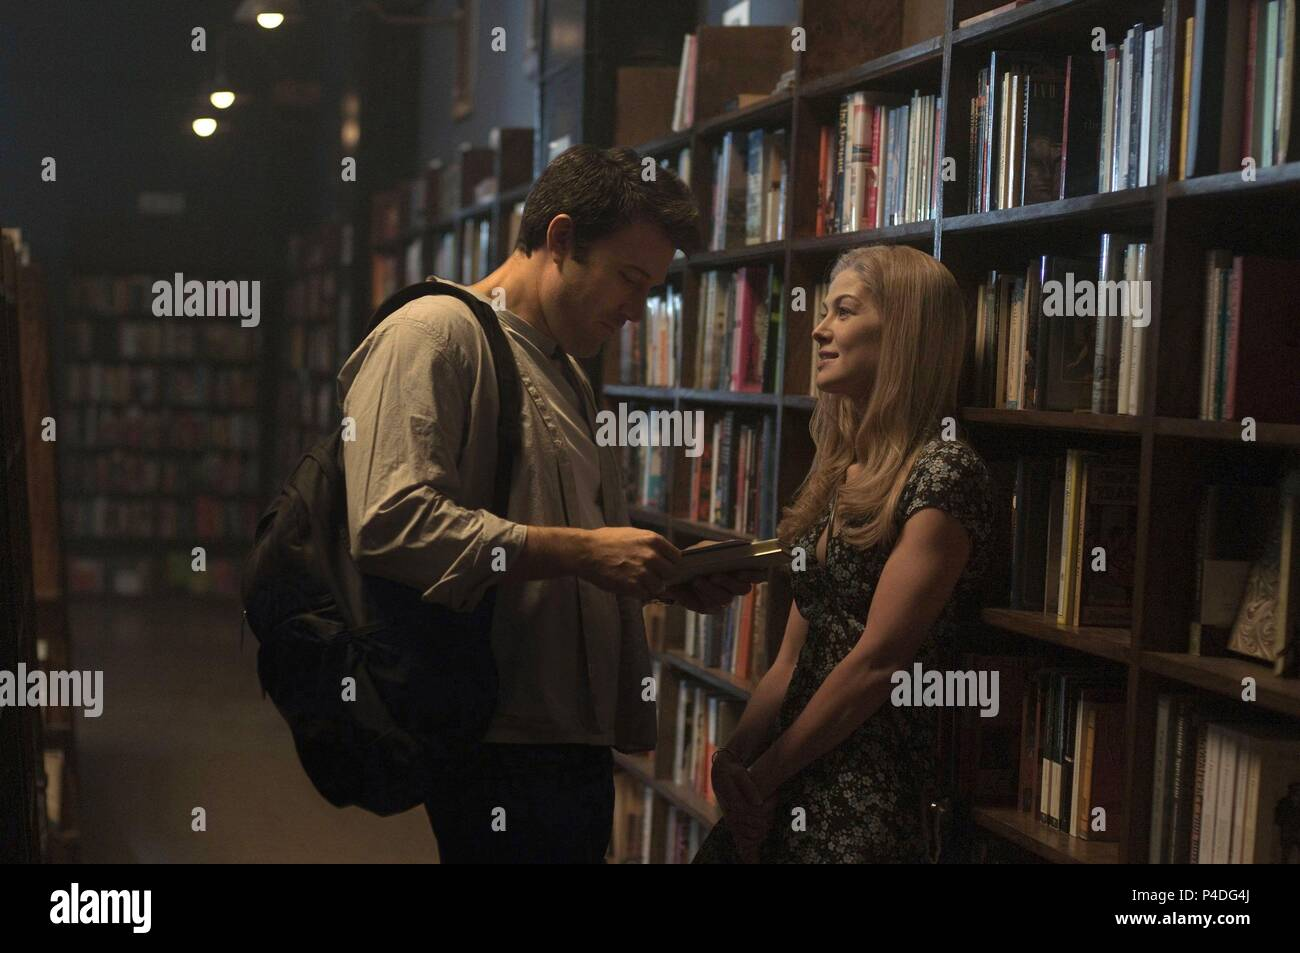 Original Film Title: GONE GIRL.  English Title: GONE GIRL.  Film Director: DAVID FINCHER.  Year: 2014.  Stars: BEN AFFLECK; ROSAMUND PIKE. Credit: NEW REGENCY PICTURES / Album - Stock Image